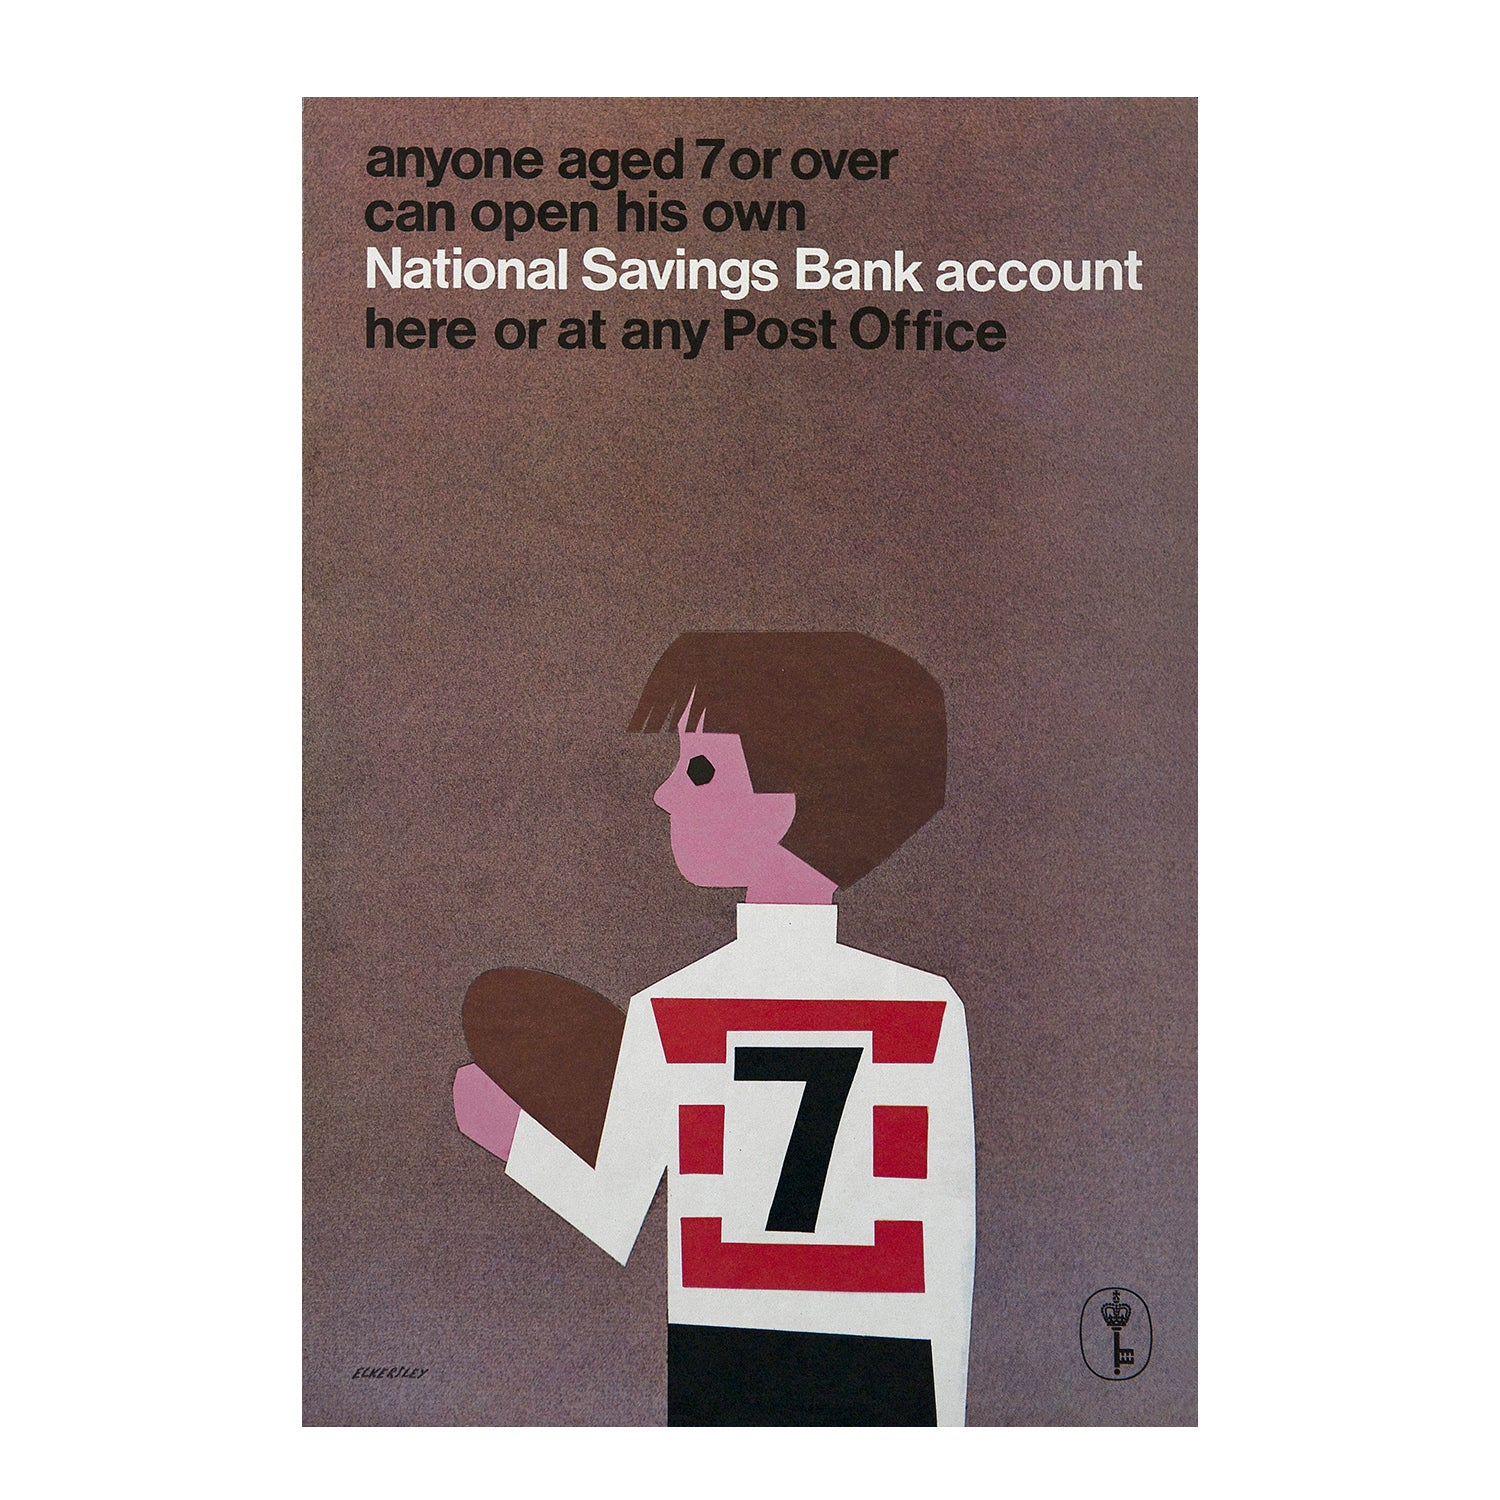 Anyone aged 7 or over can open his own National Savings Bank account